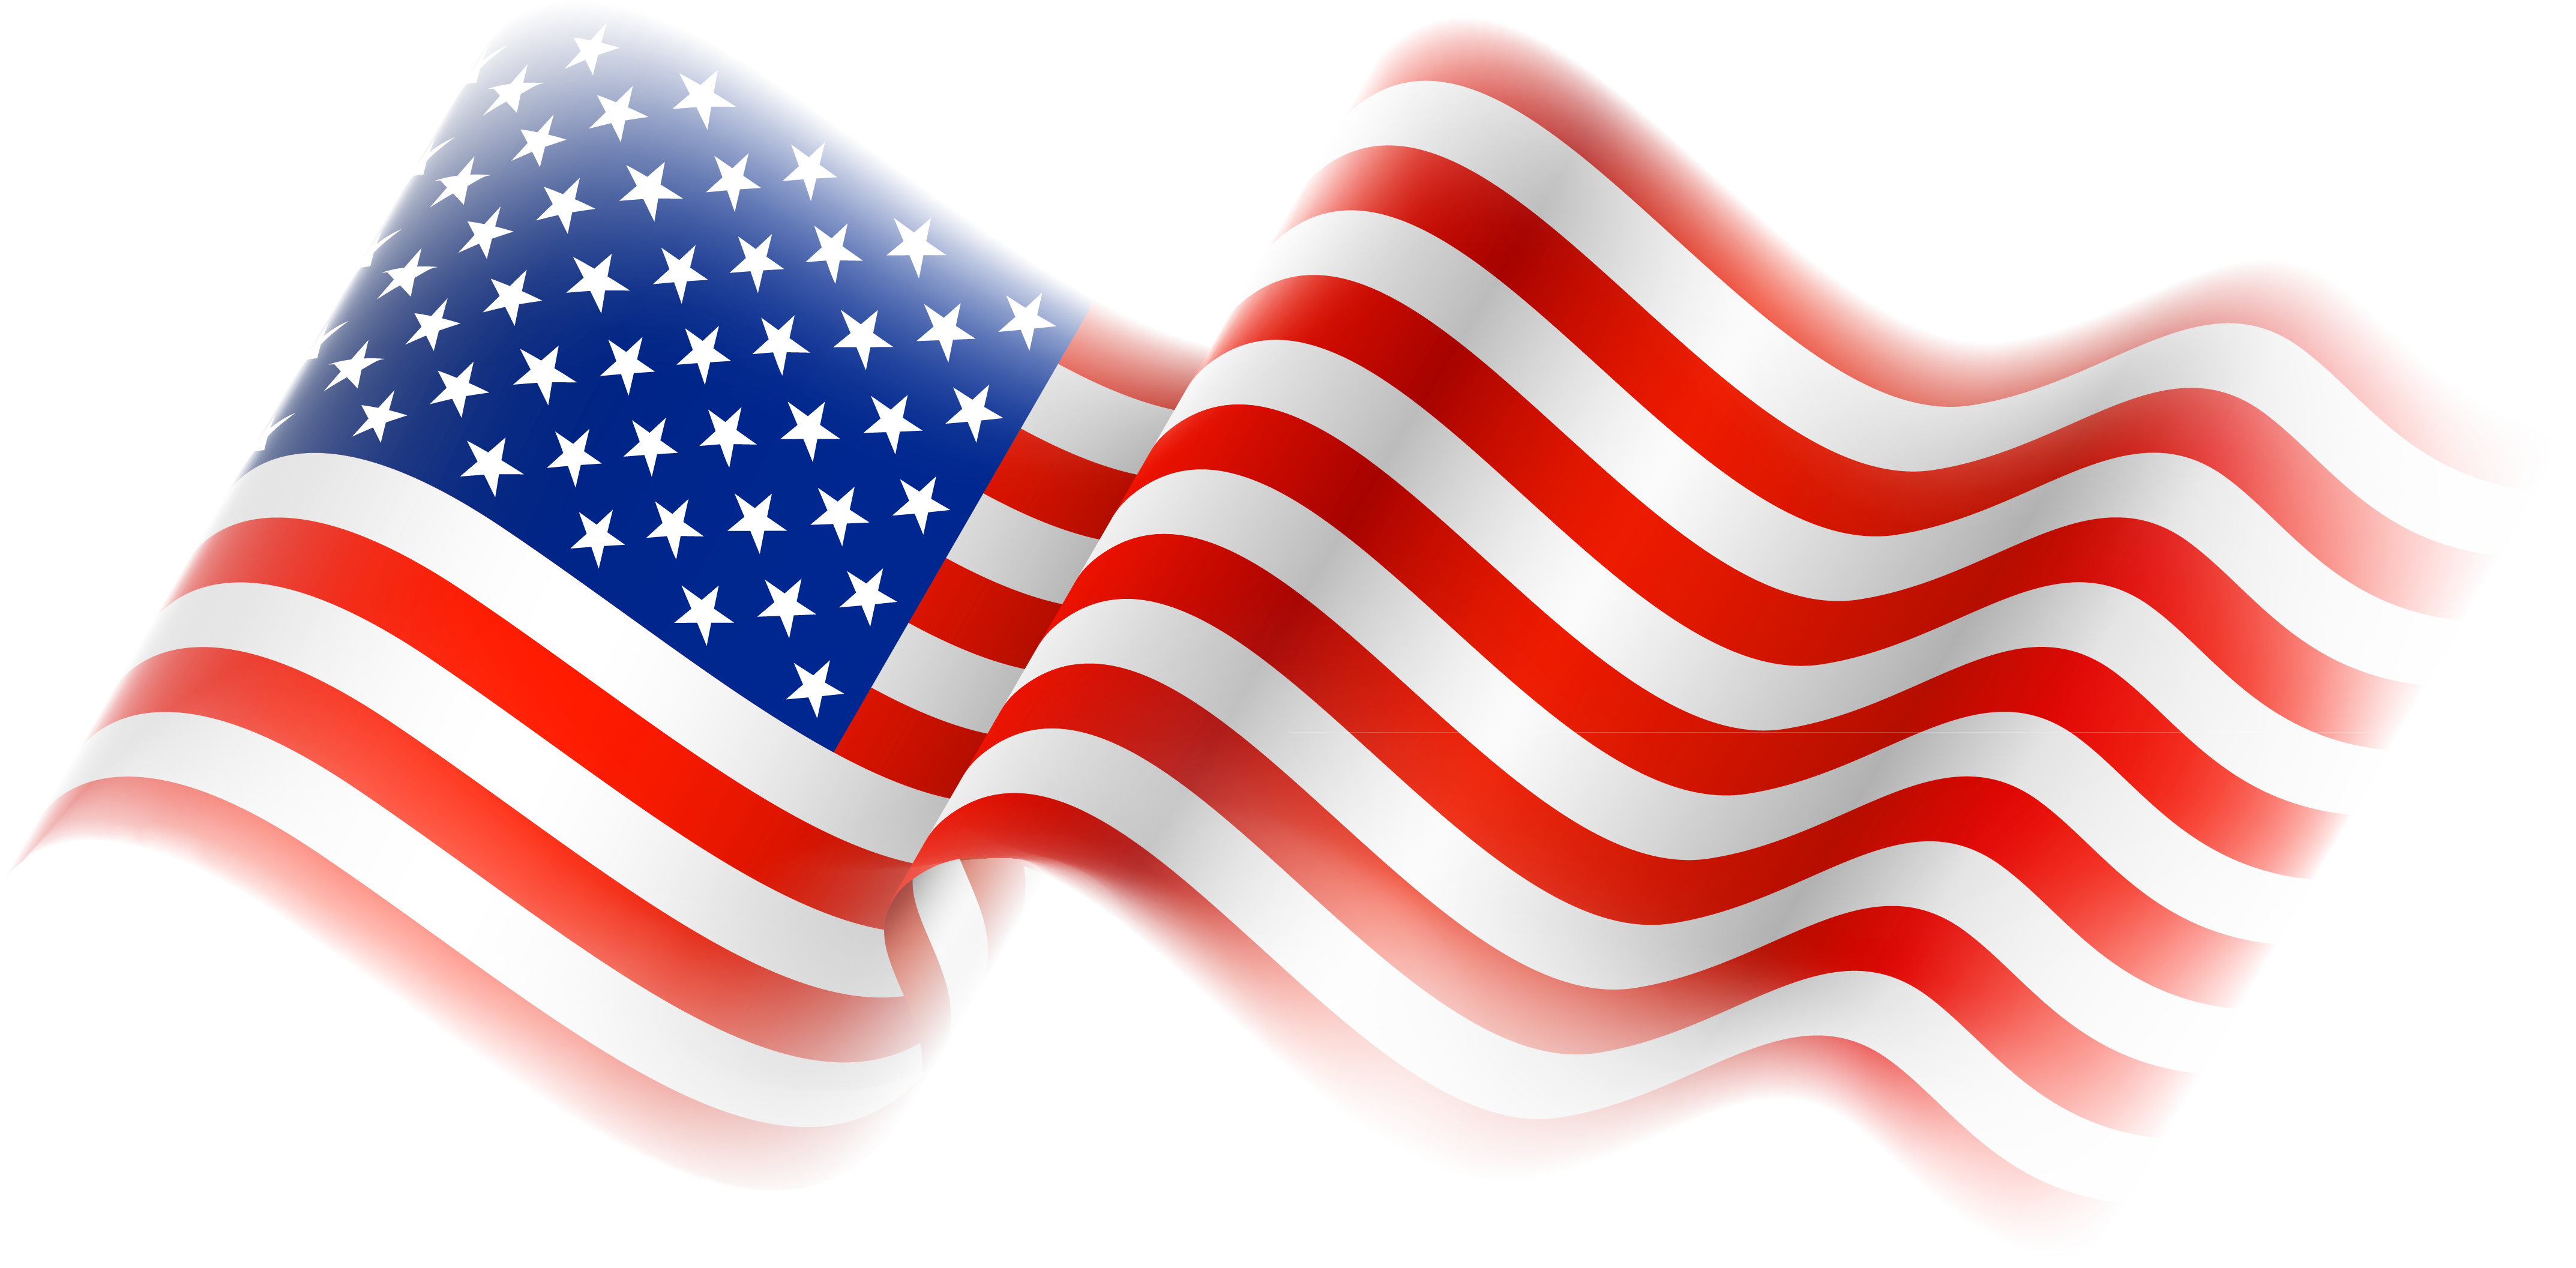 52 Images Of Usa Flag Art   You Can Use These Free Cliparts For Your